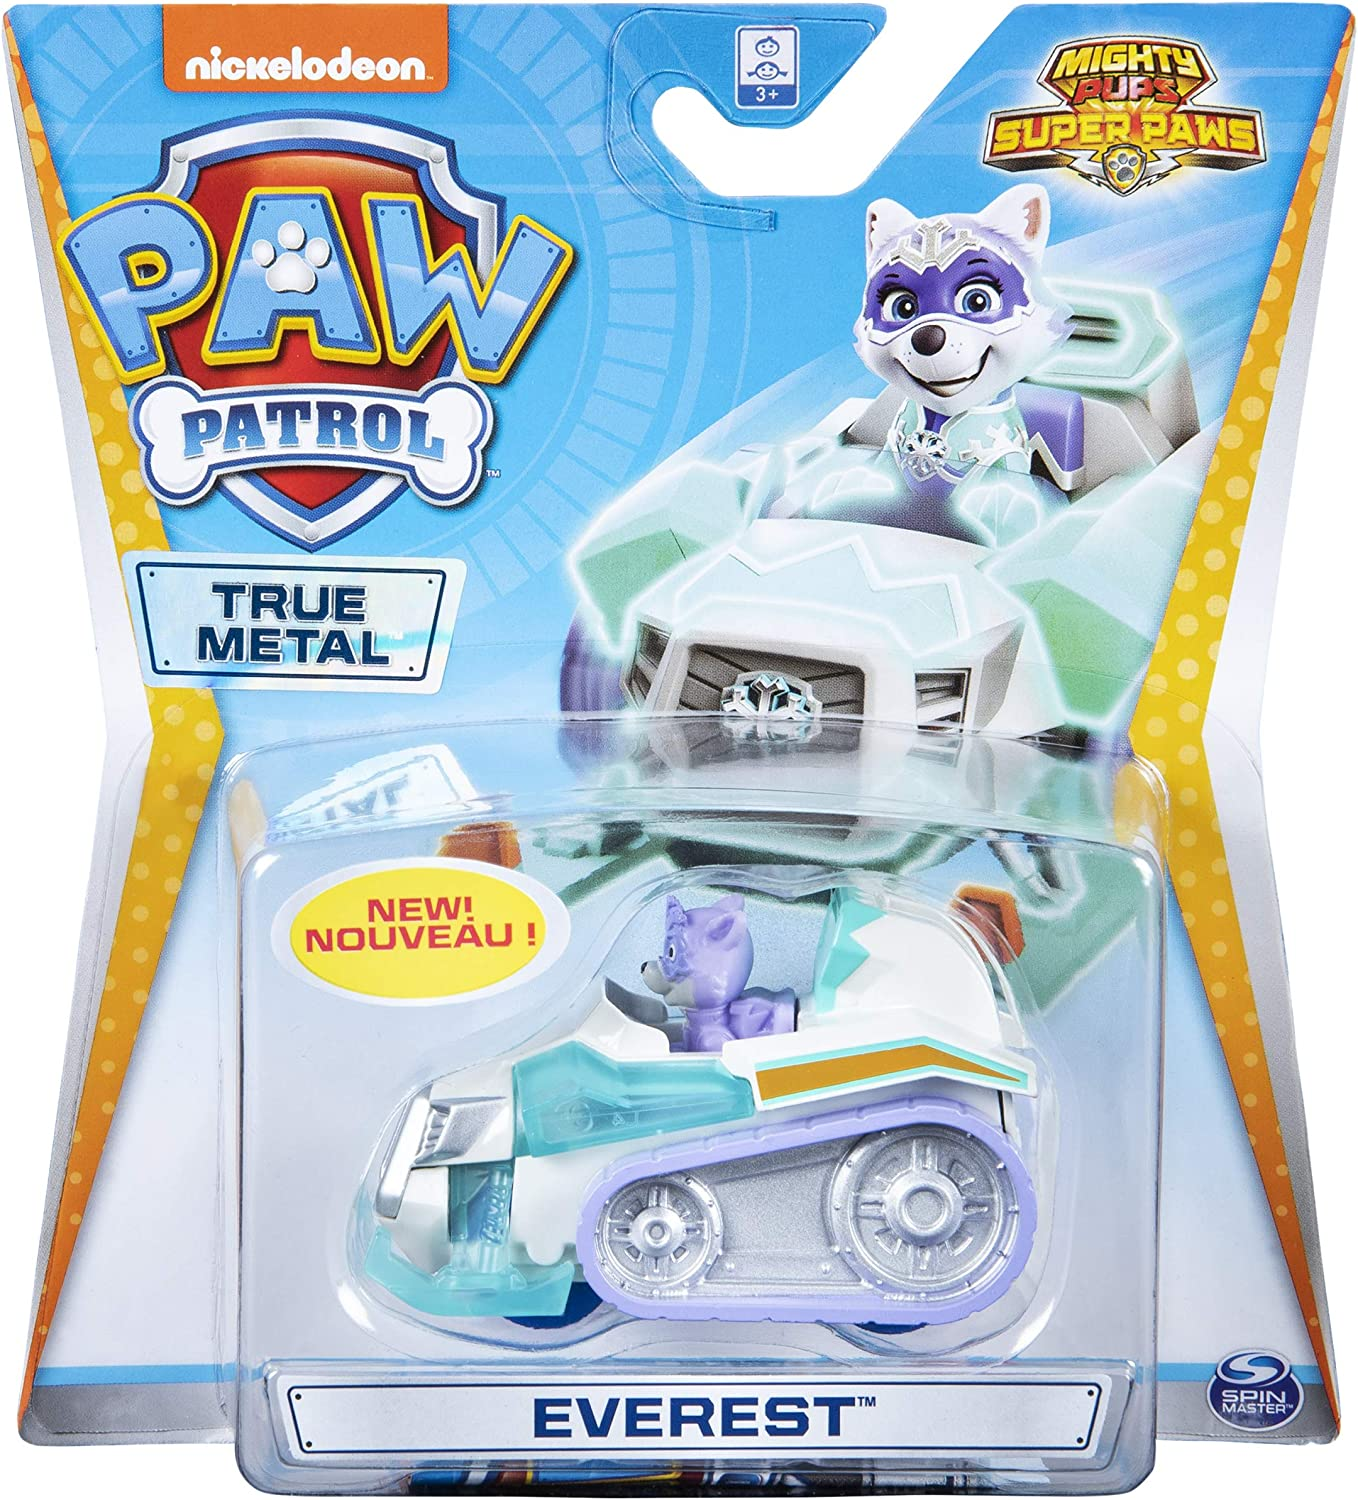 Paw Patrol Mighty Pup Super Paws - Everest